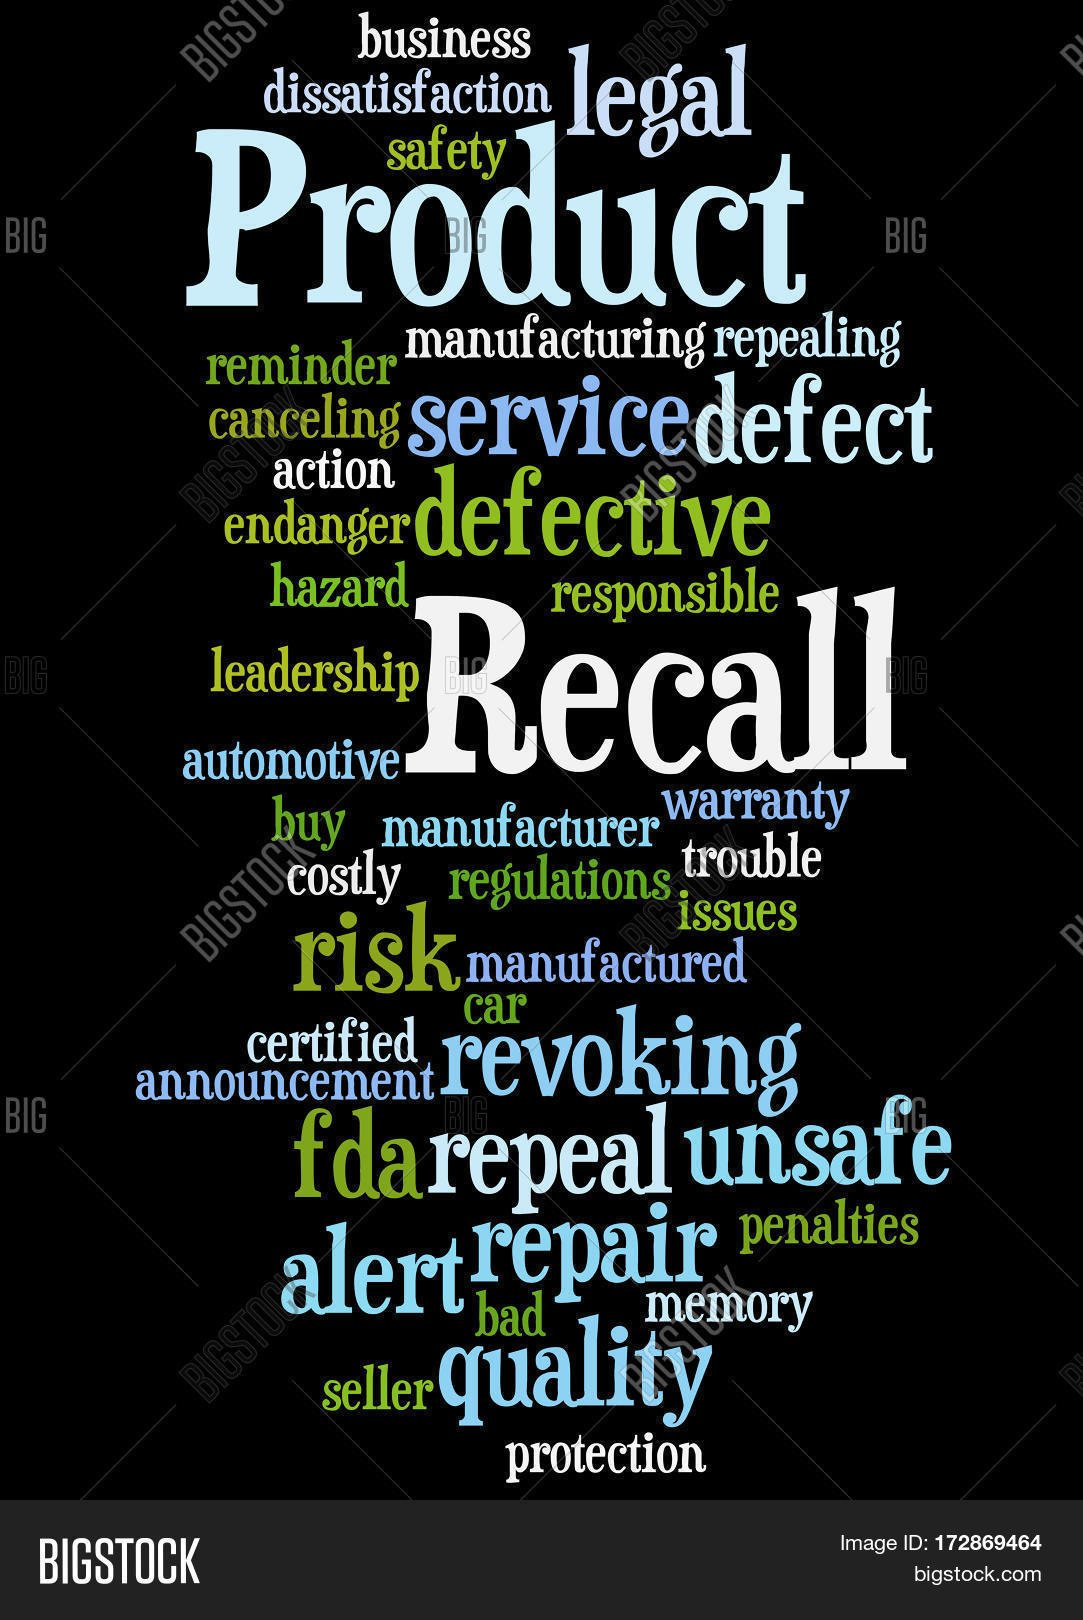 Product Recall Word Image Photo Free Trial Bigstock